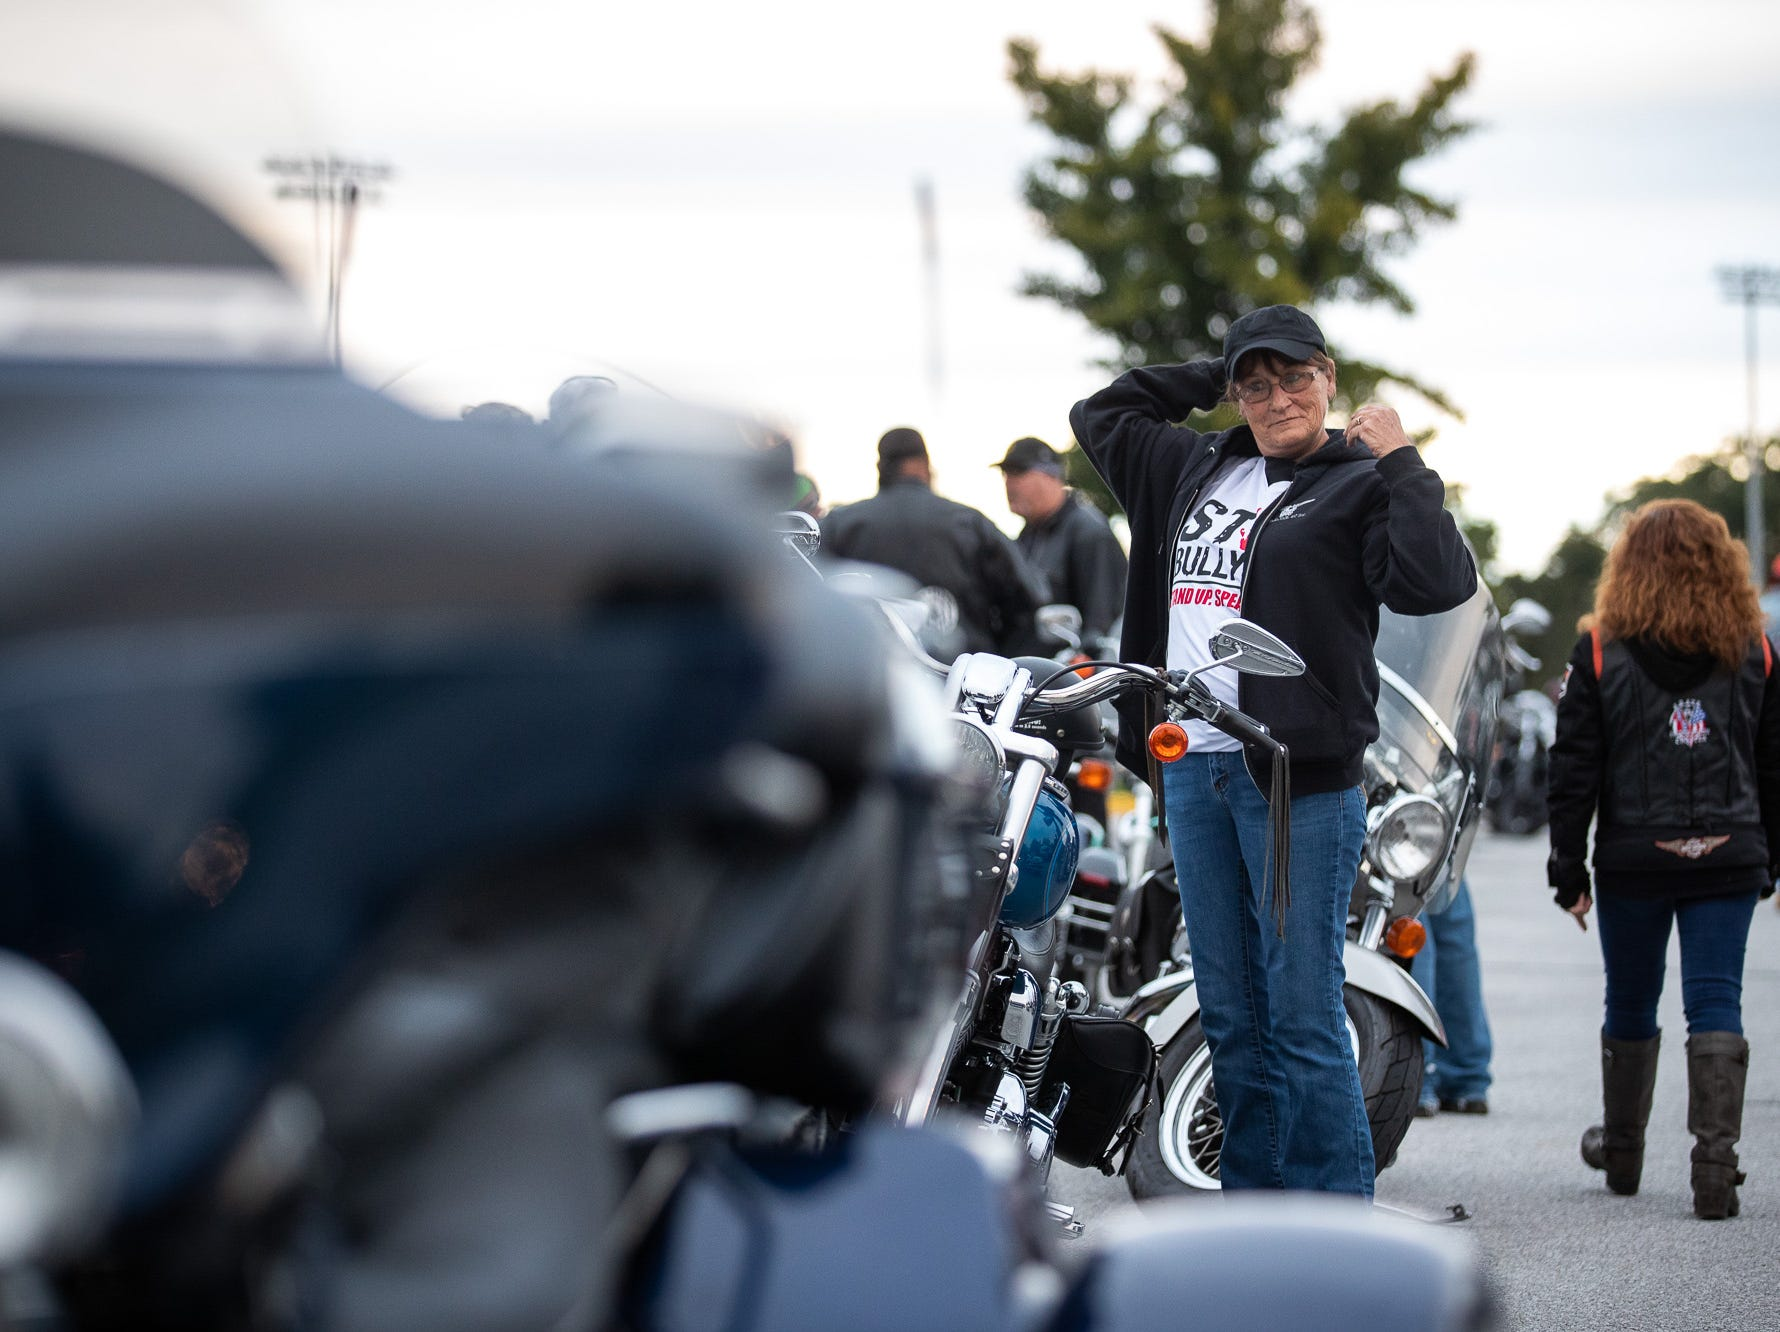 Dozens of members of the Alliance of Bikers Aimed Toward Education biker group prepare to roll out after escorting Aireana Mummerth, a 6th grader, to school at Emory H. Markle Intermediate School, Friday, Oct. 5, 2018, in Penn Township.